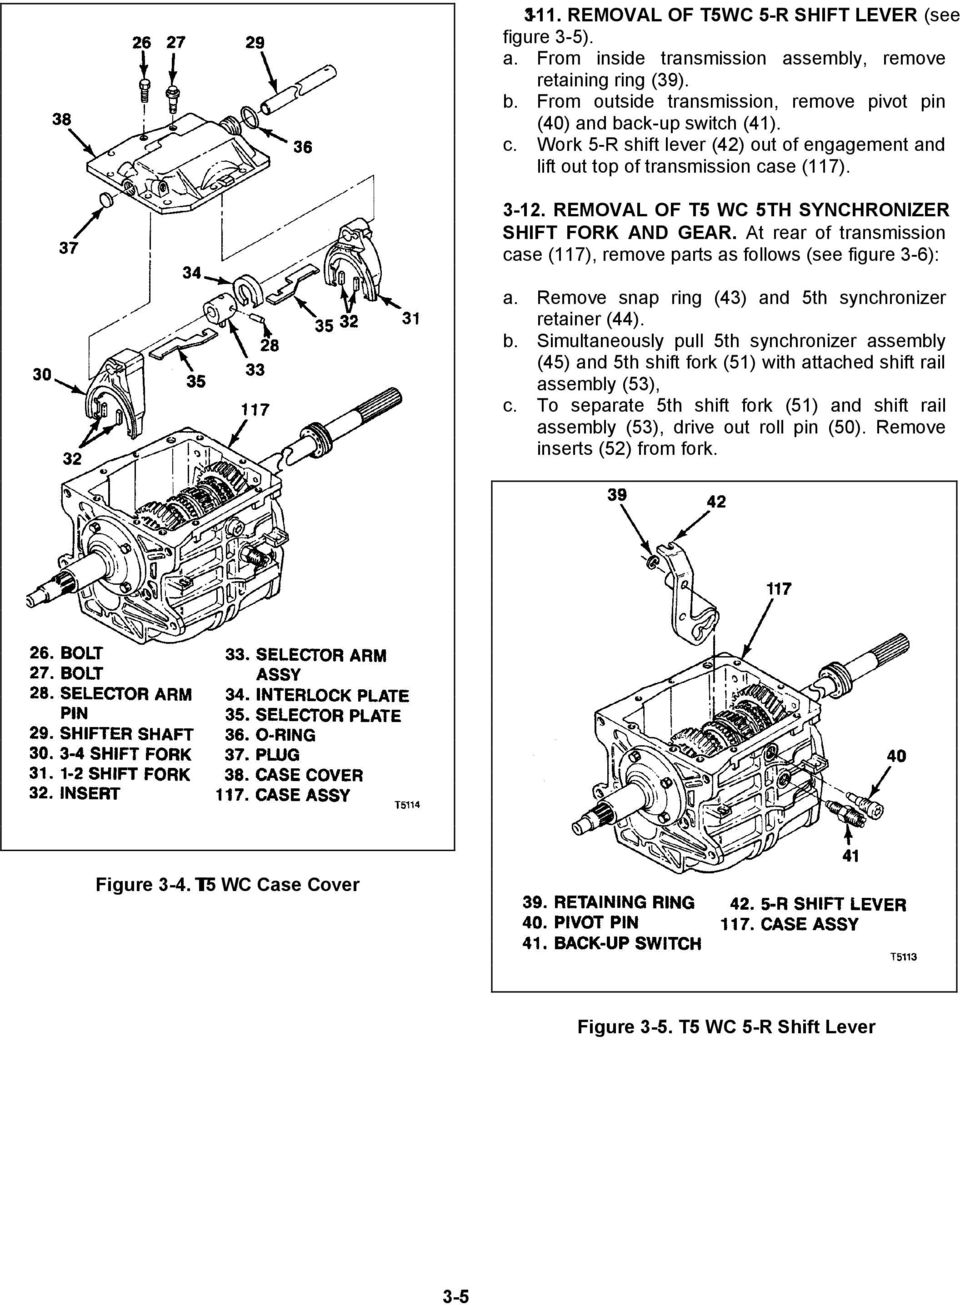 At rear of transmission case (7), remove parts as follows (see figure 3-6): a. Remove snap ring (43) and 5th synchronizer retainer (44). b.